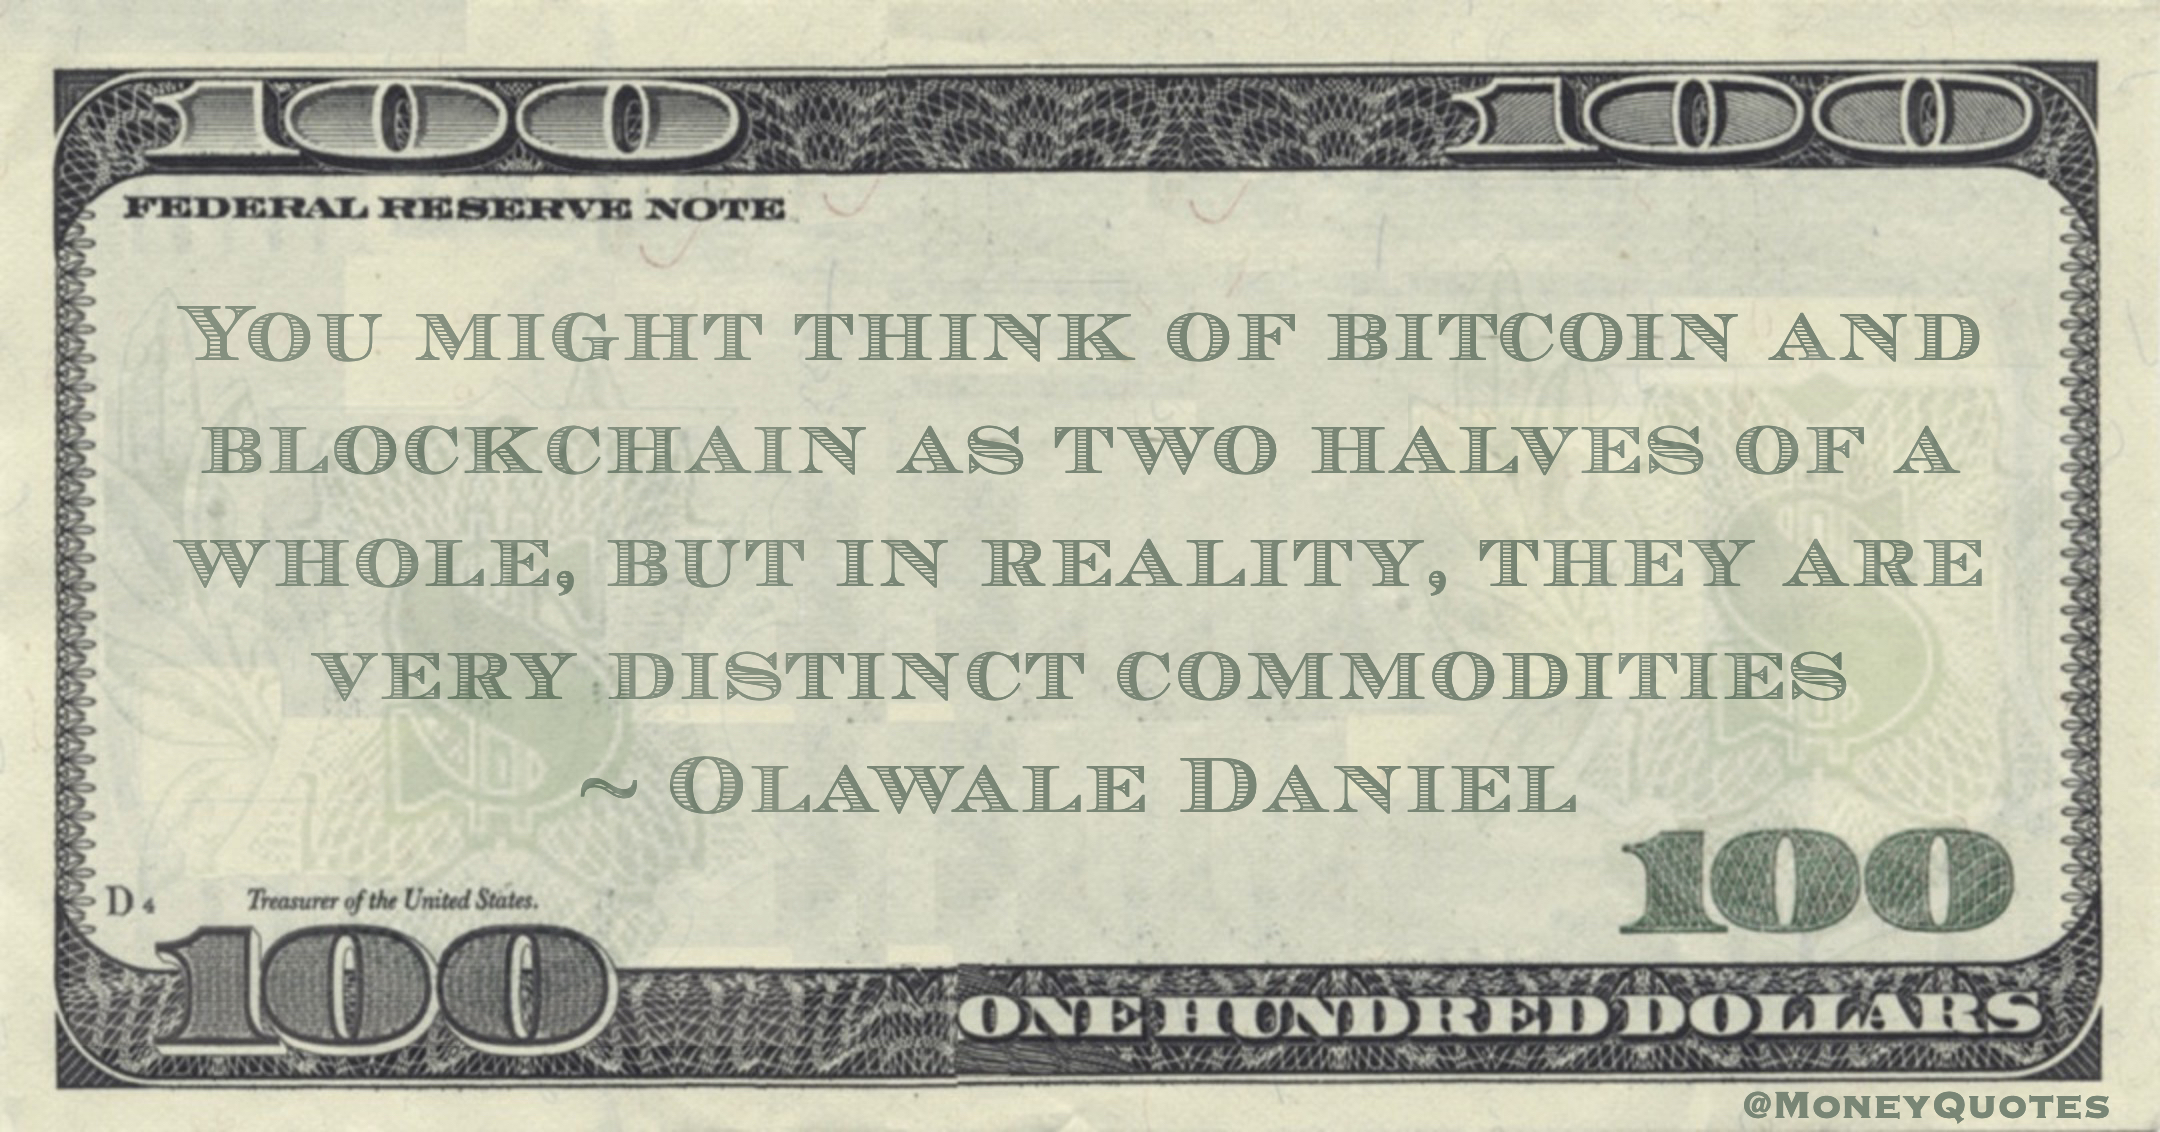 You might think of bitcoin and blockchain as two halves of a whole, but in reality, they are very distinct commodities Quote